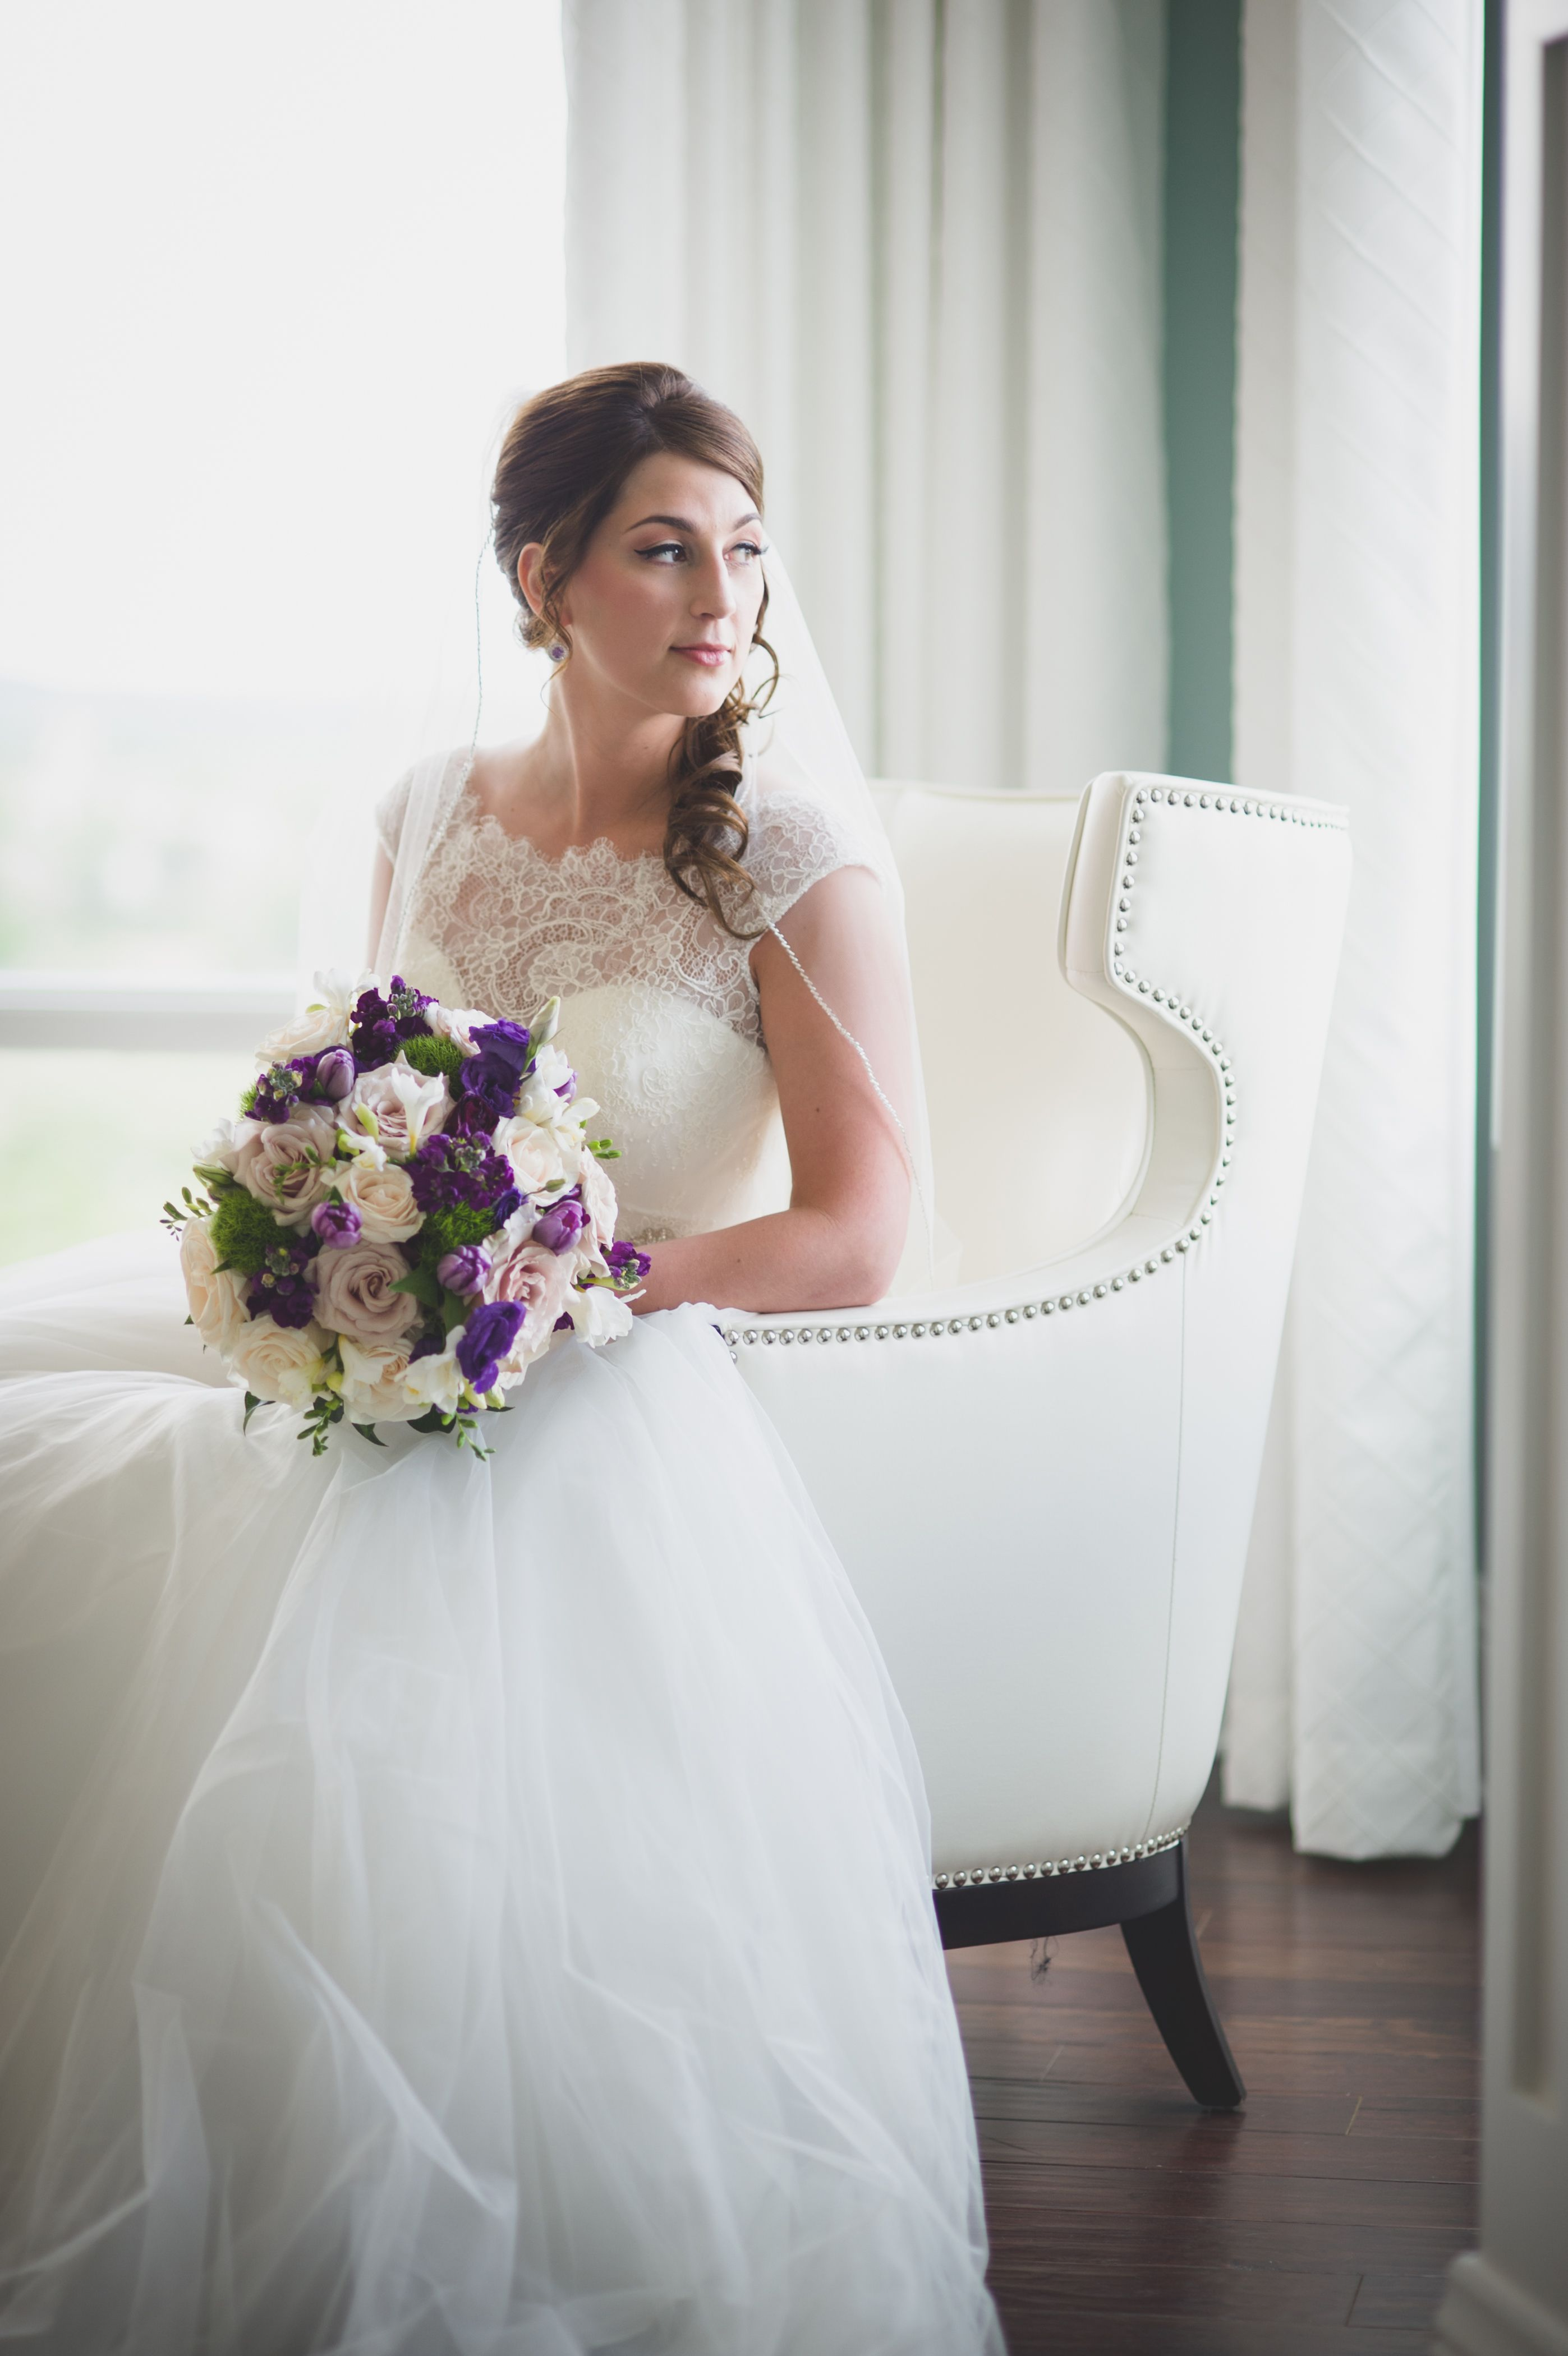 The Pinery At The Hill Wedding Photography, Colorado Wedding Photography, Allison Easterling Photography